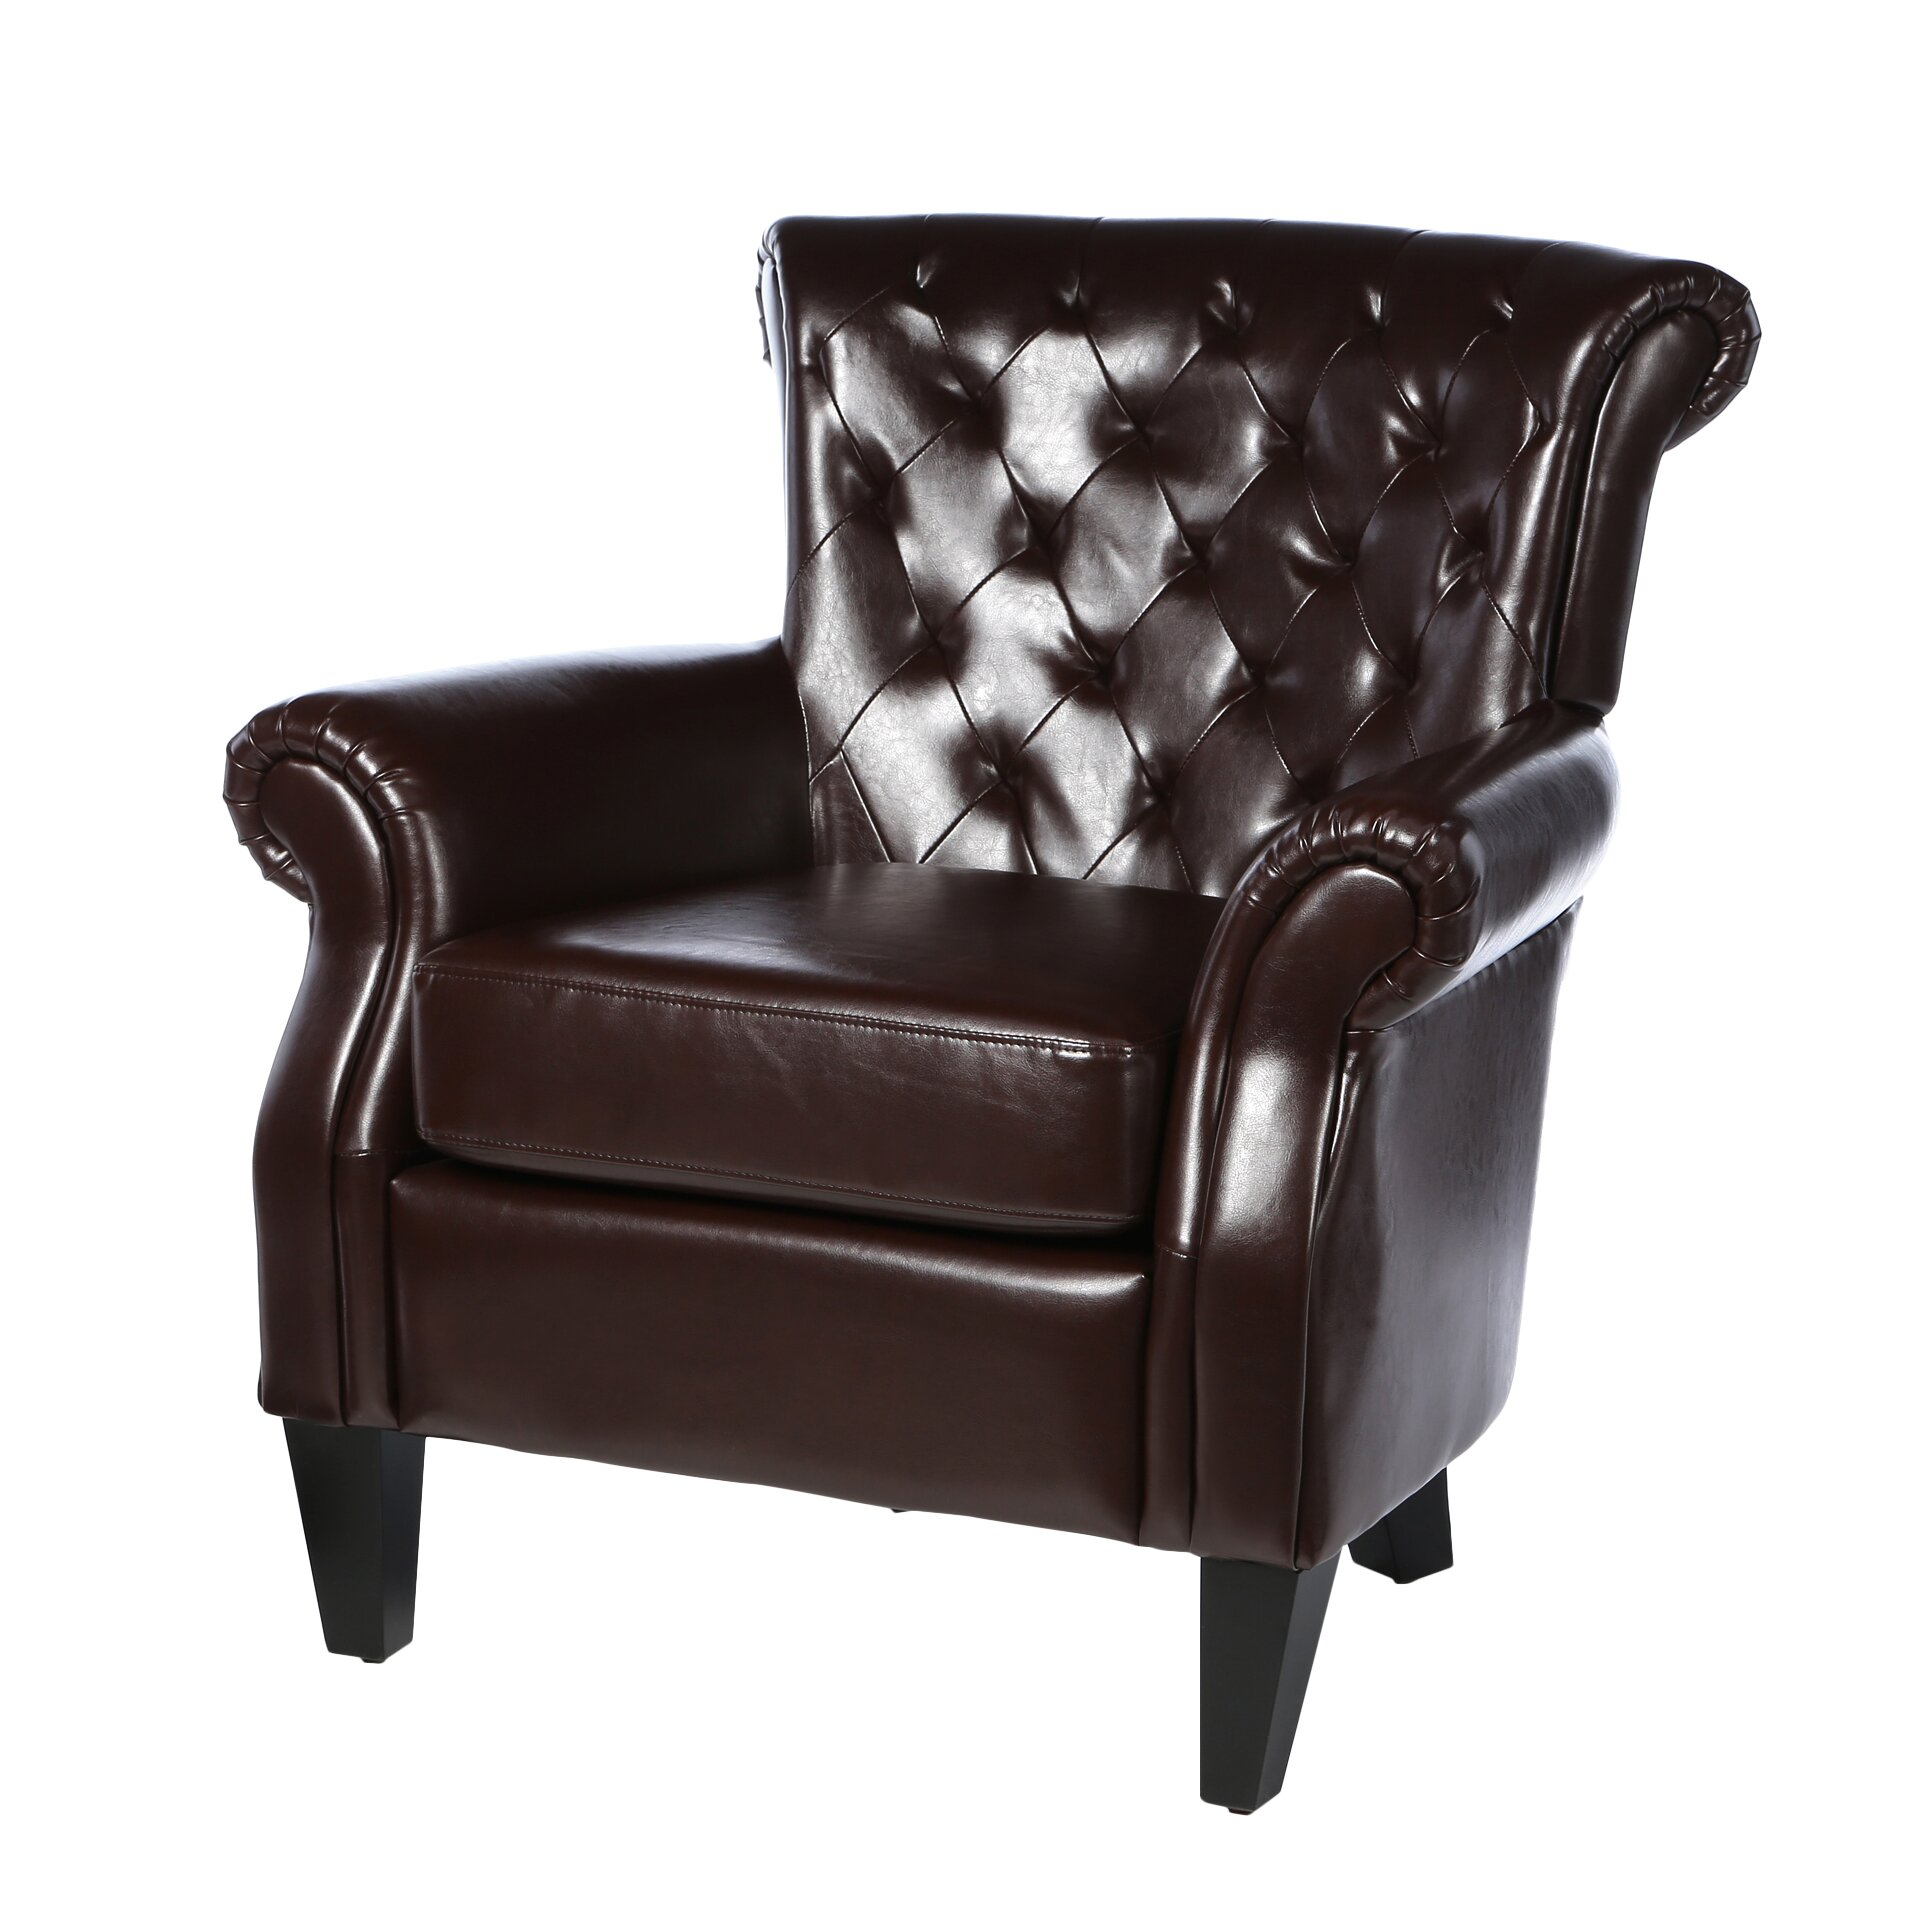 Home loft concepts mcclain tufted upholstered arm chair reviews wayfair - Upholstered chairs for small spaces concept ...